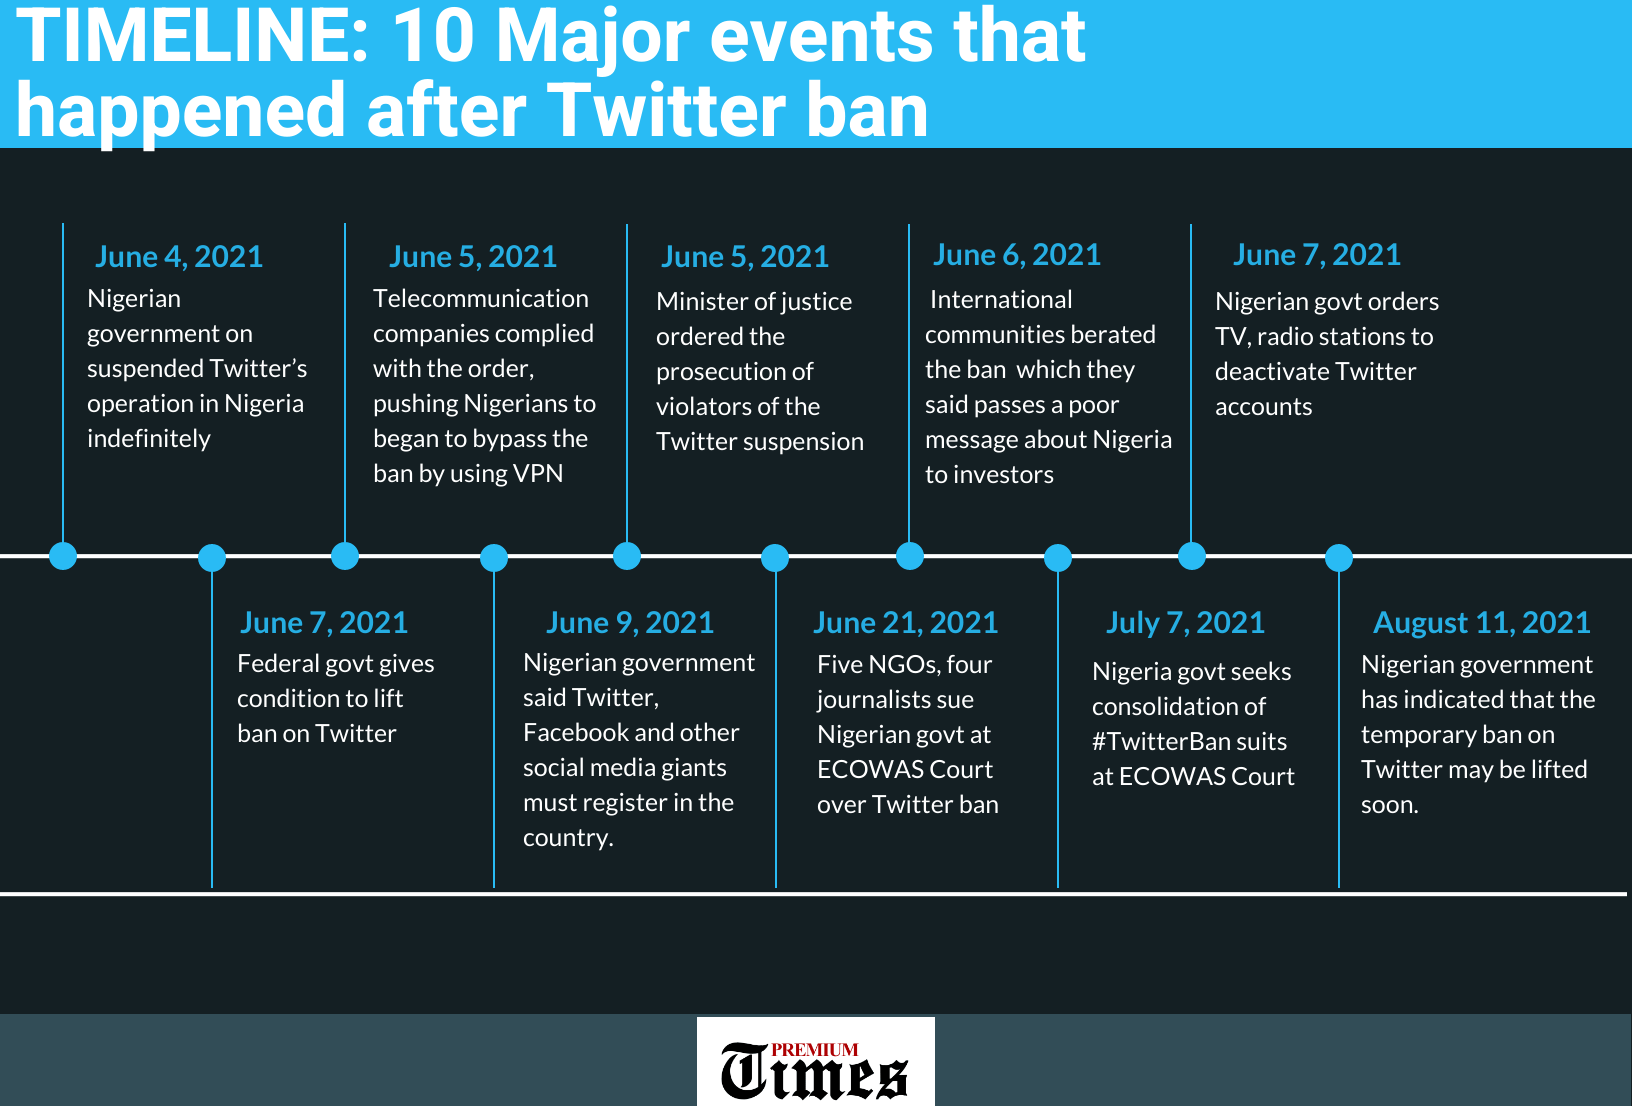 A Timeline Infographic